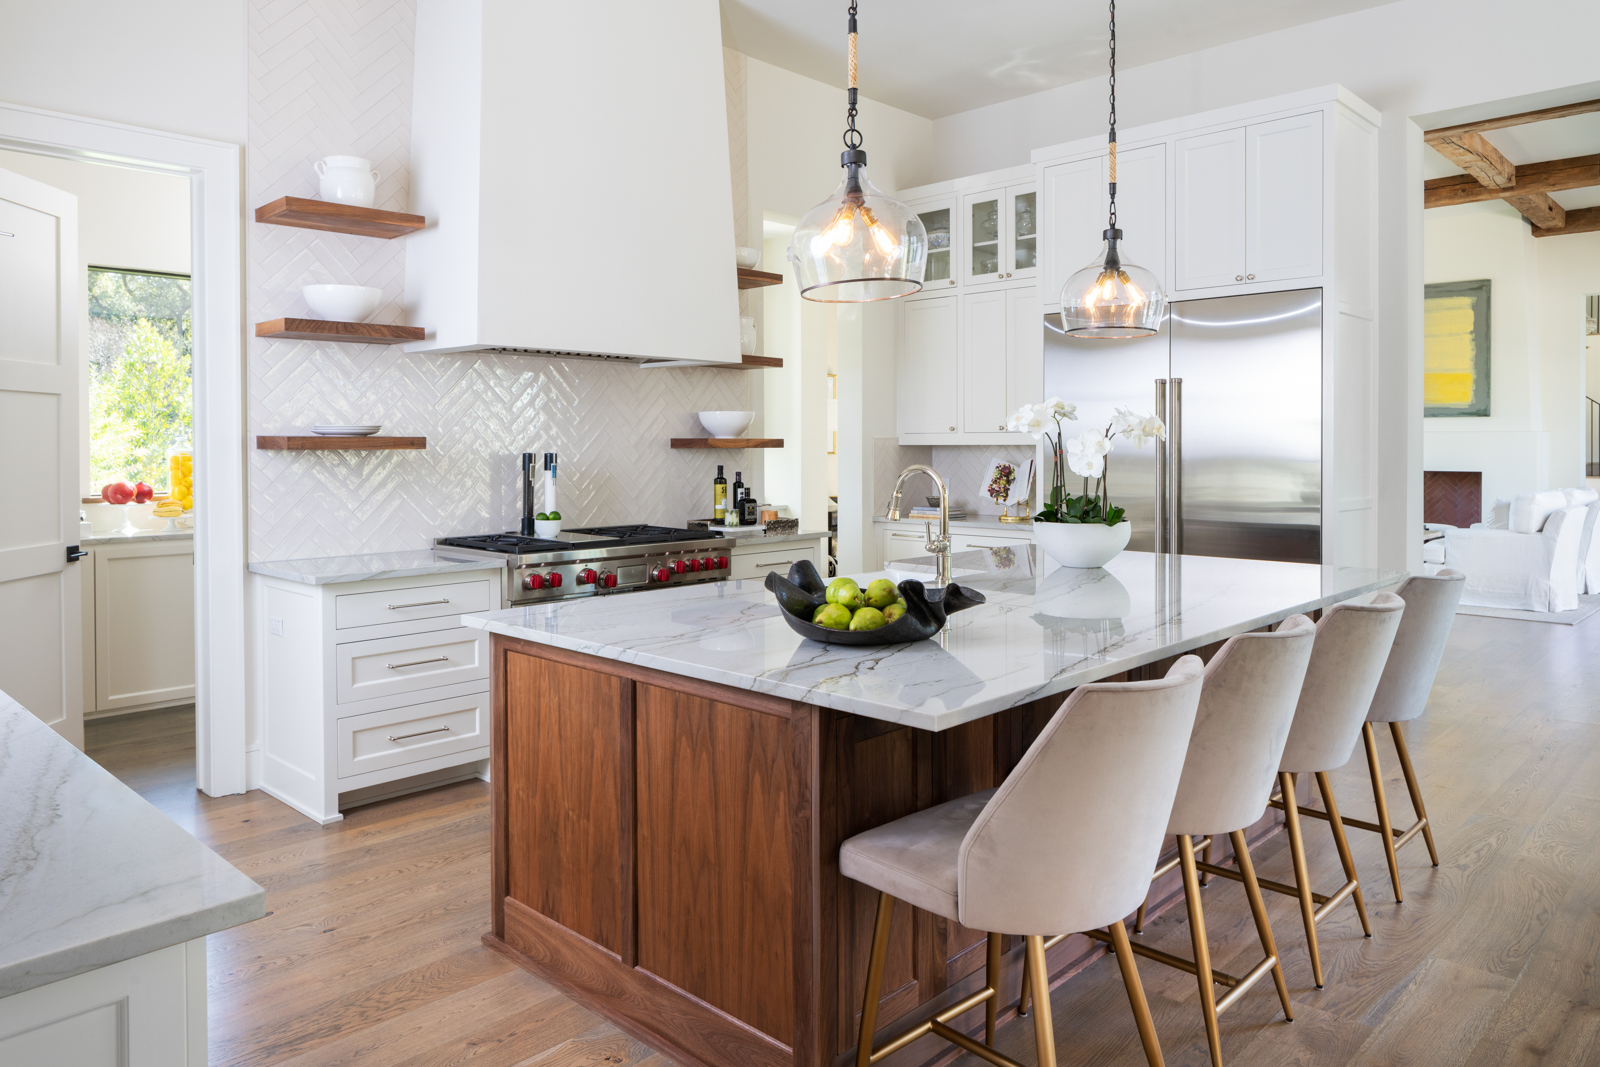 Robert Gomez - Austin Texas Editorial, Food & Beverage, Interiors Photographer | Interiors | 13